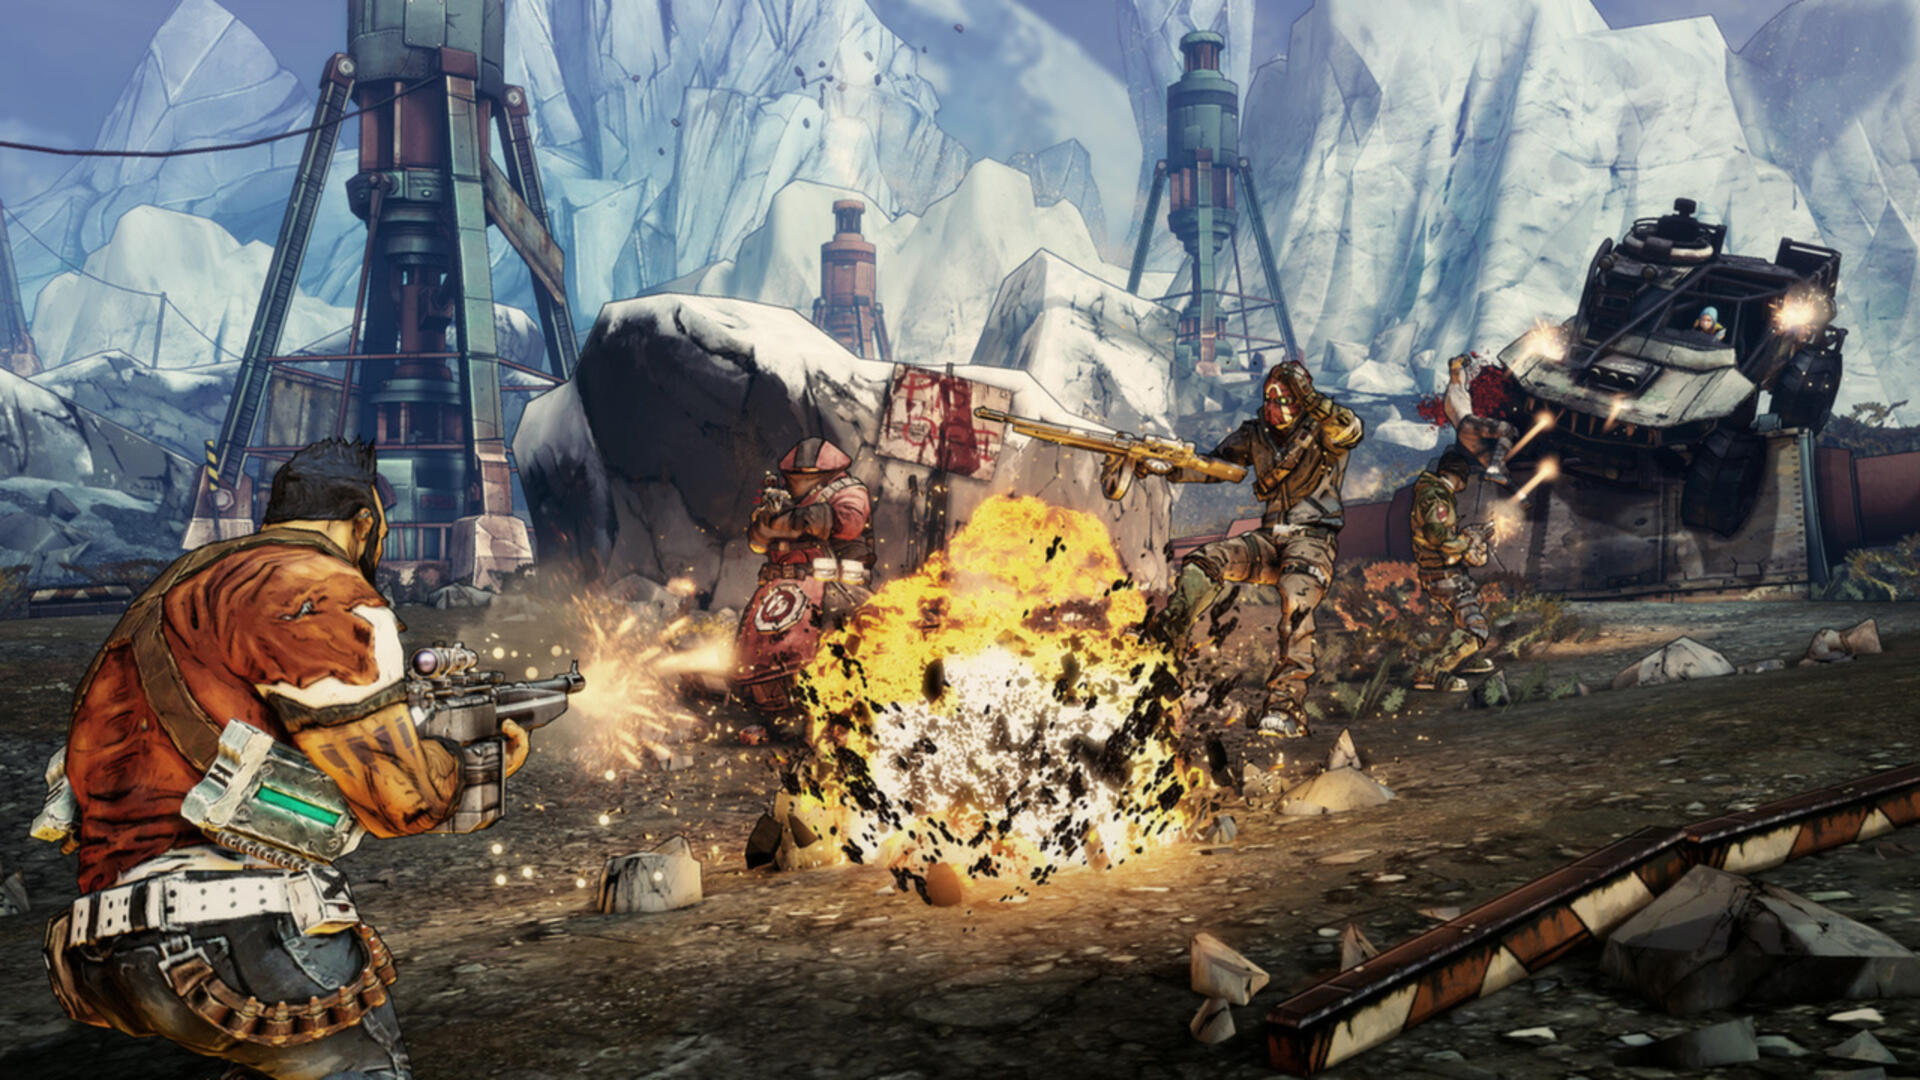 Now It Looks Like Gearbox is Teasing Borderlands 2 for Switch